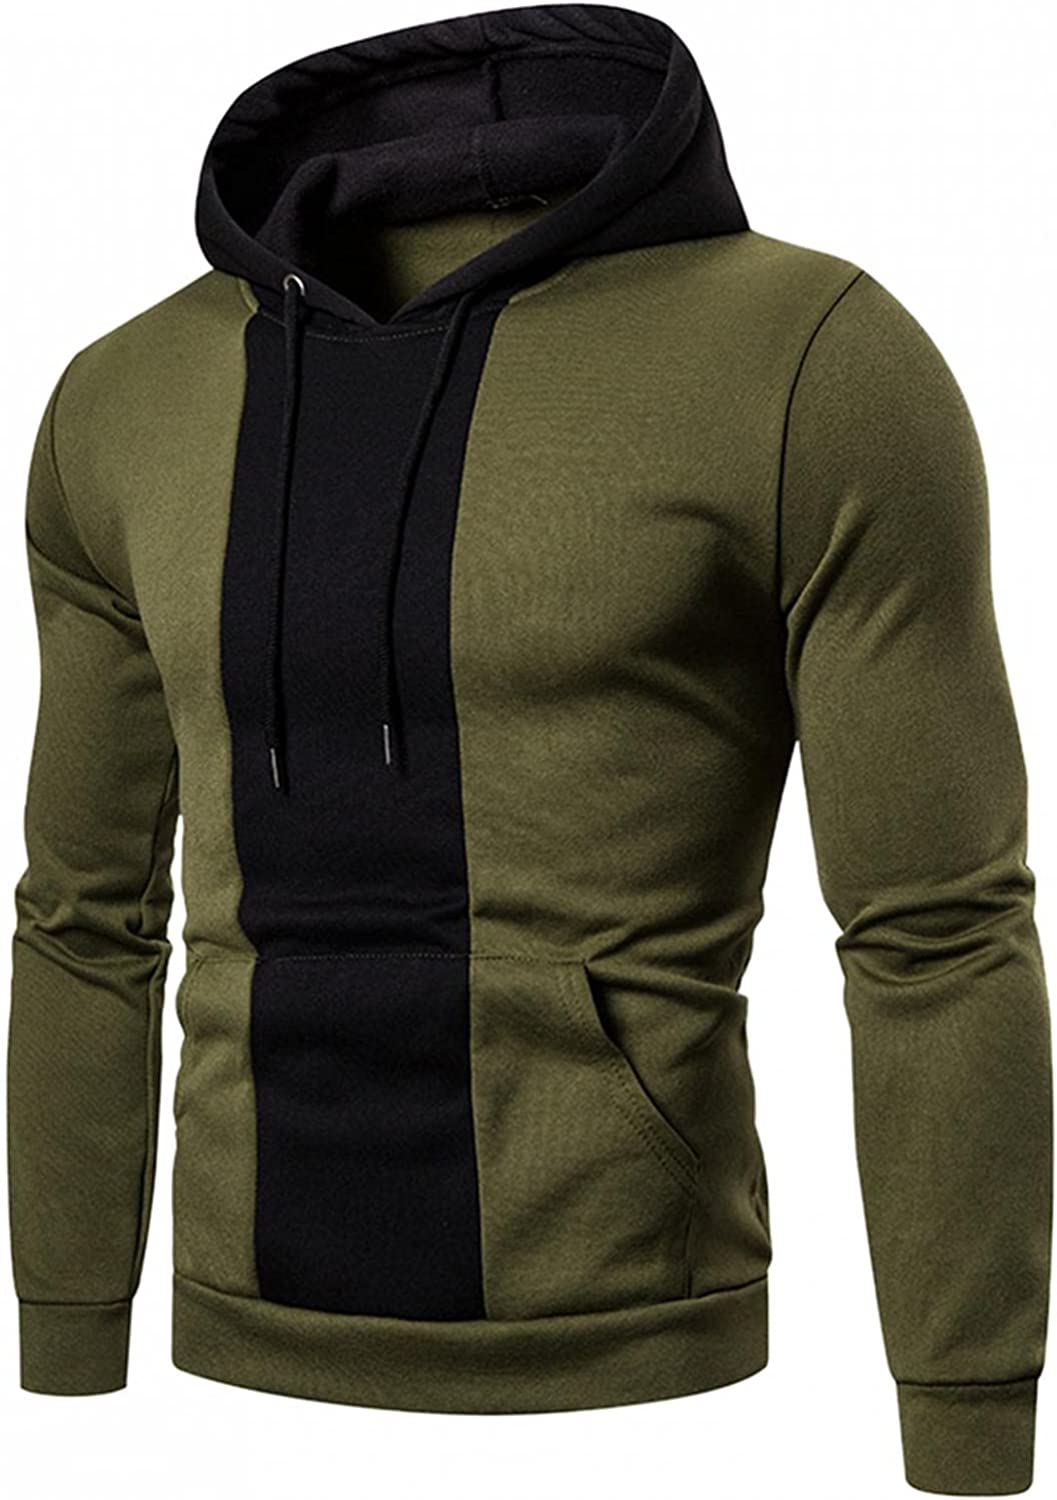 Qsctys Hoodies for Men Pullover Color Block Fleece Long Sleeve Sweatshirts Hooded Sports Casual Outwear Regular Fit T Shirts